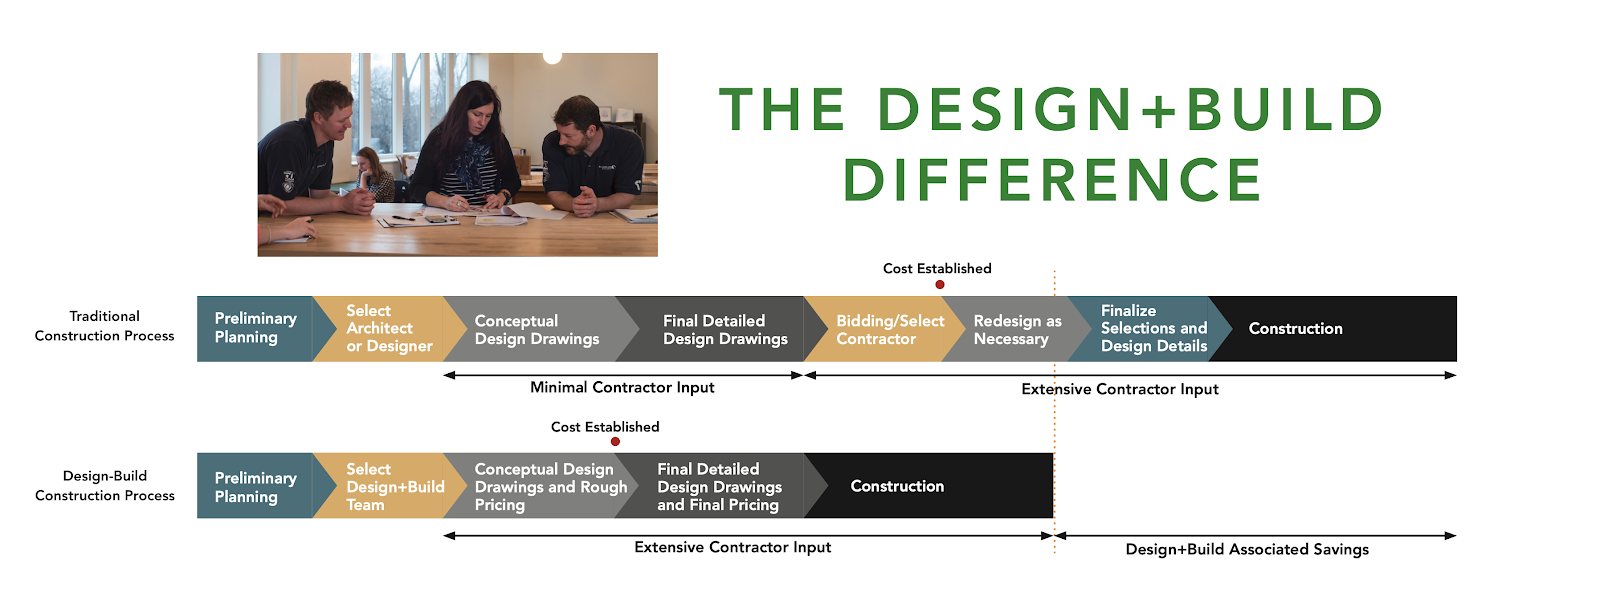 design-build-difference